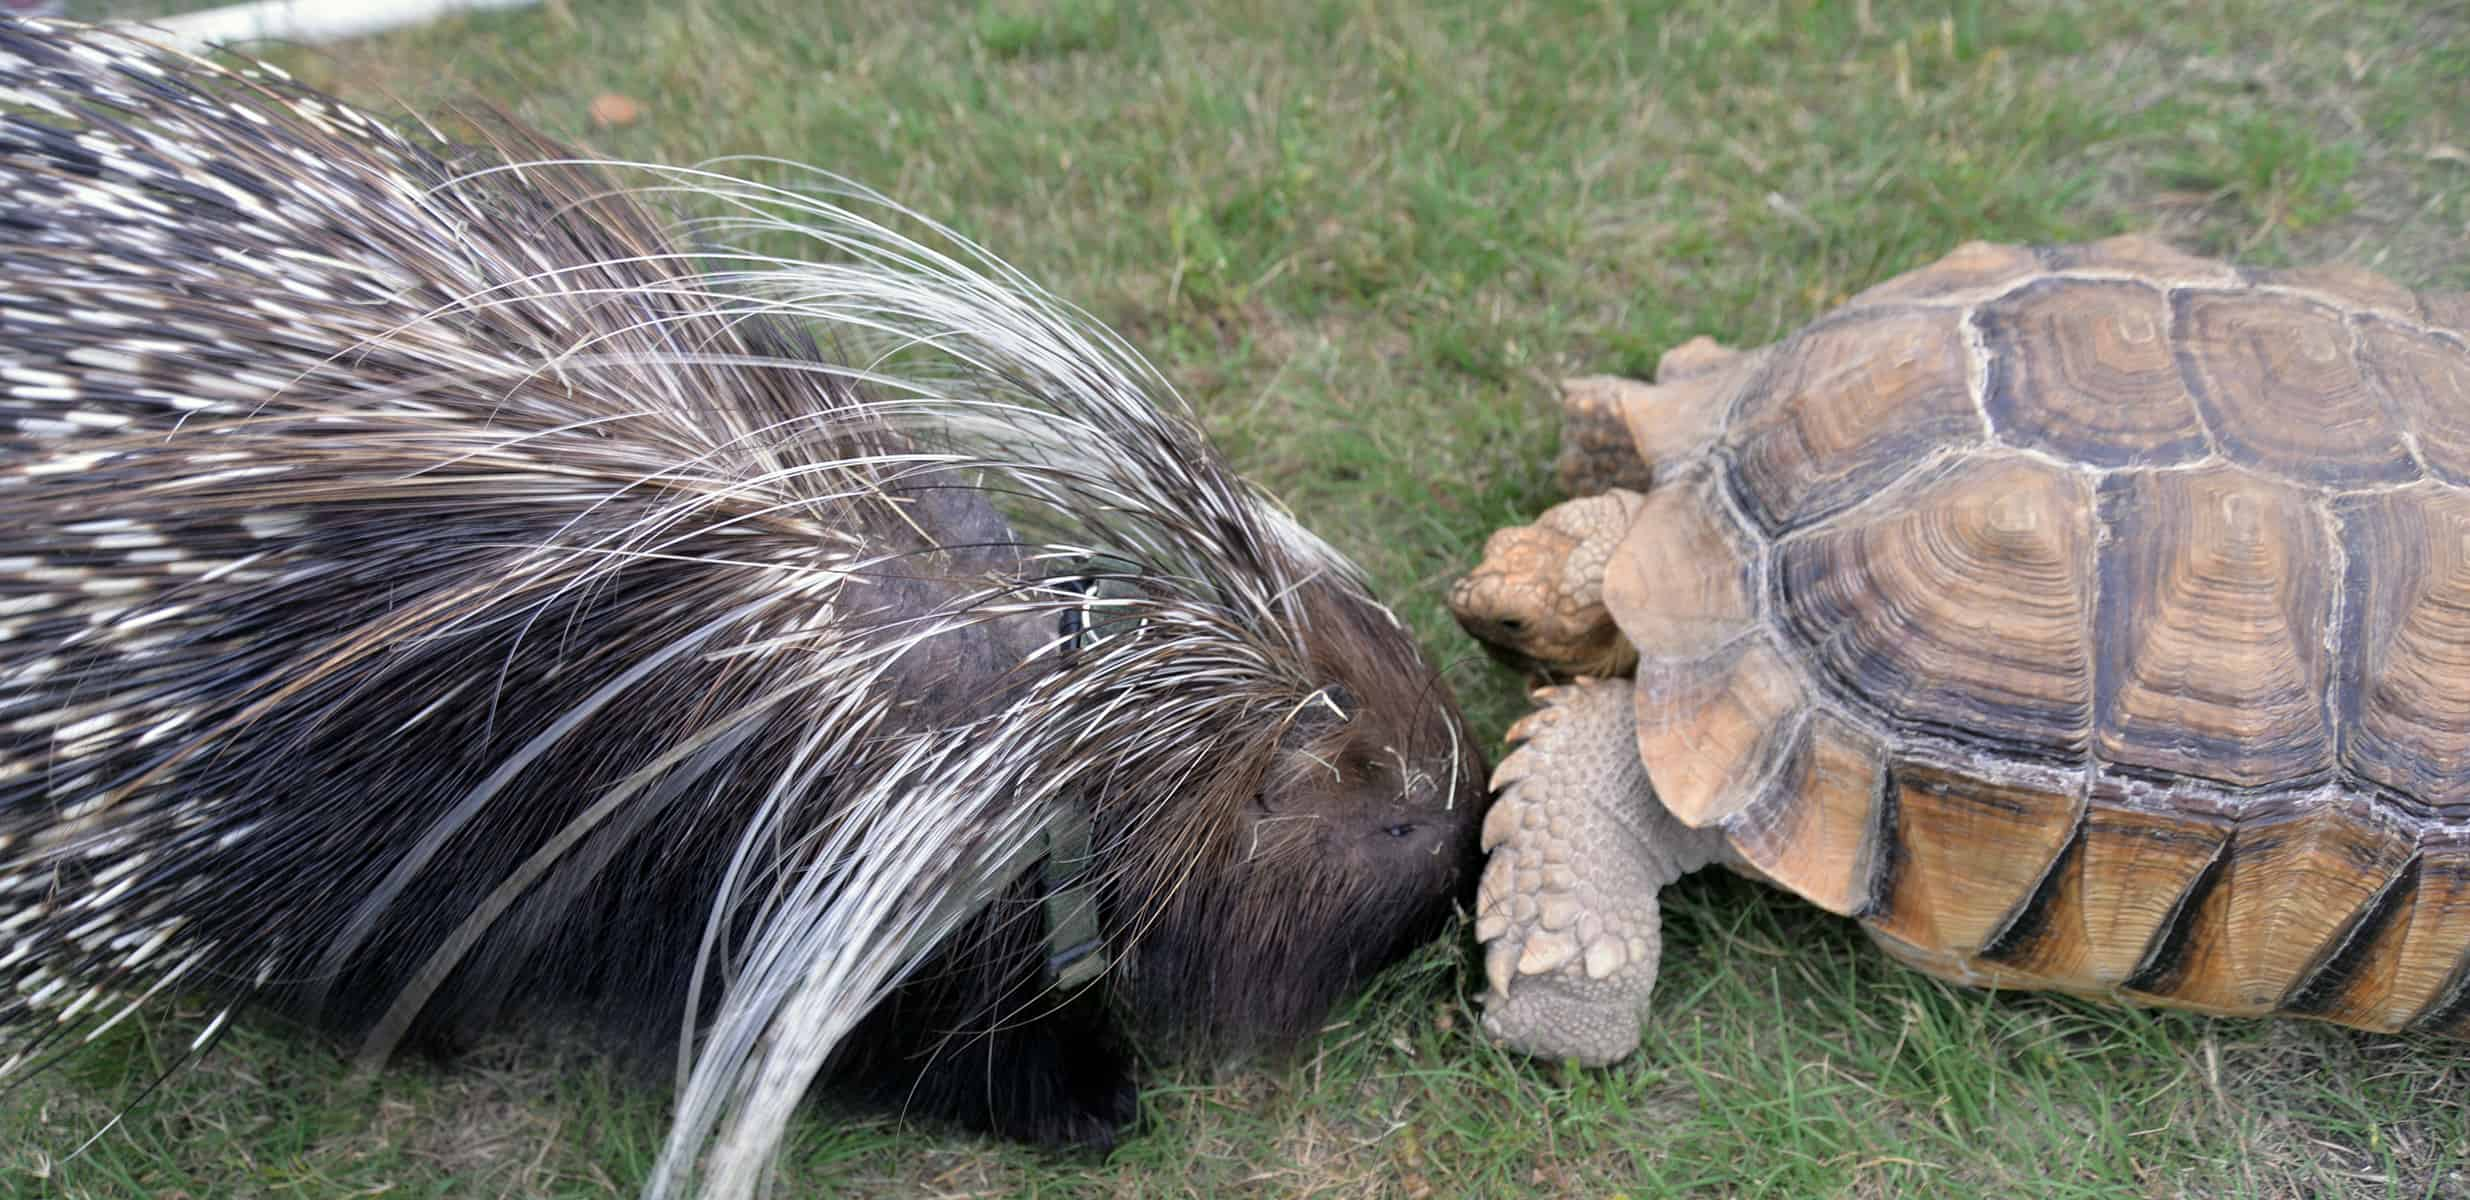 What happens when Porcupine is attacked?